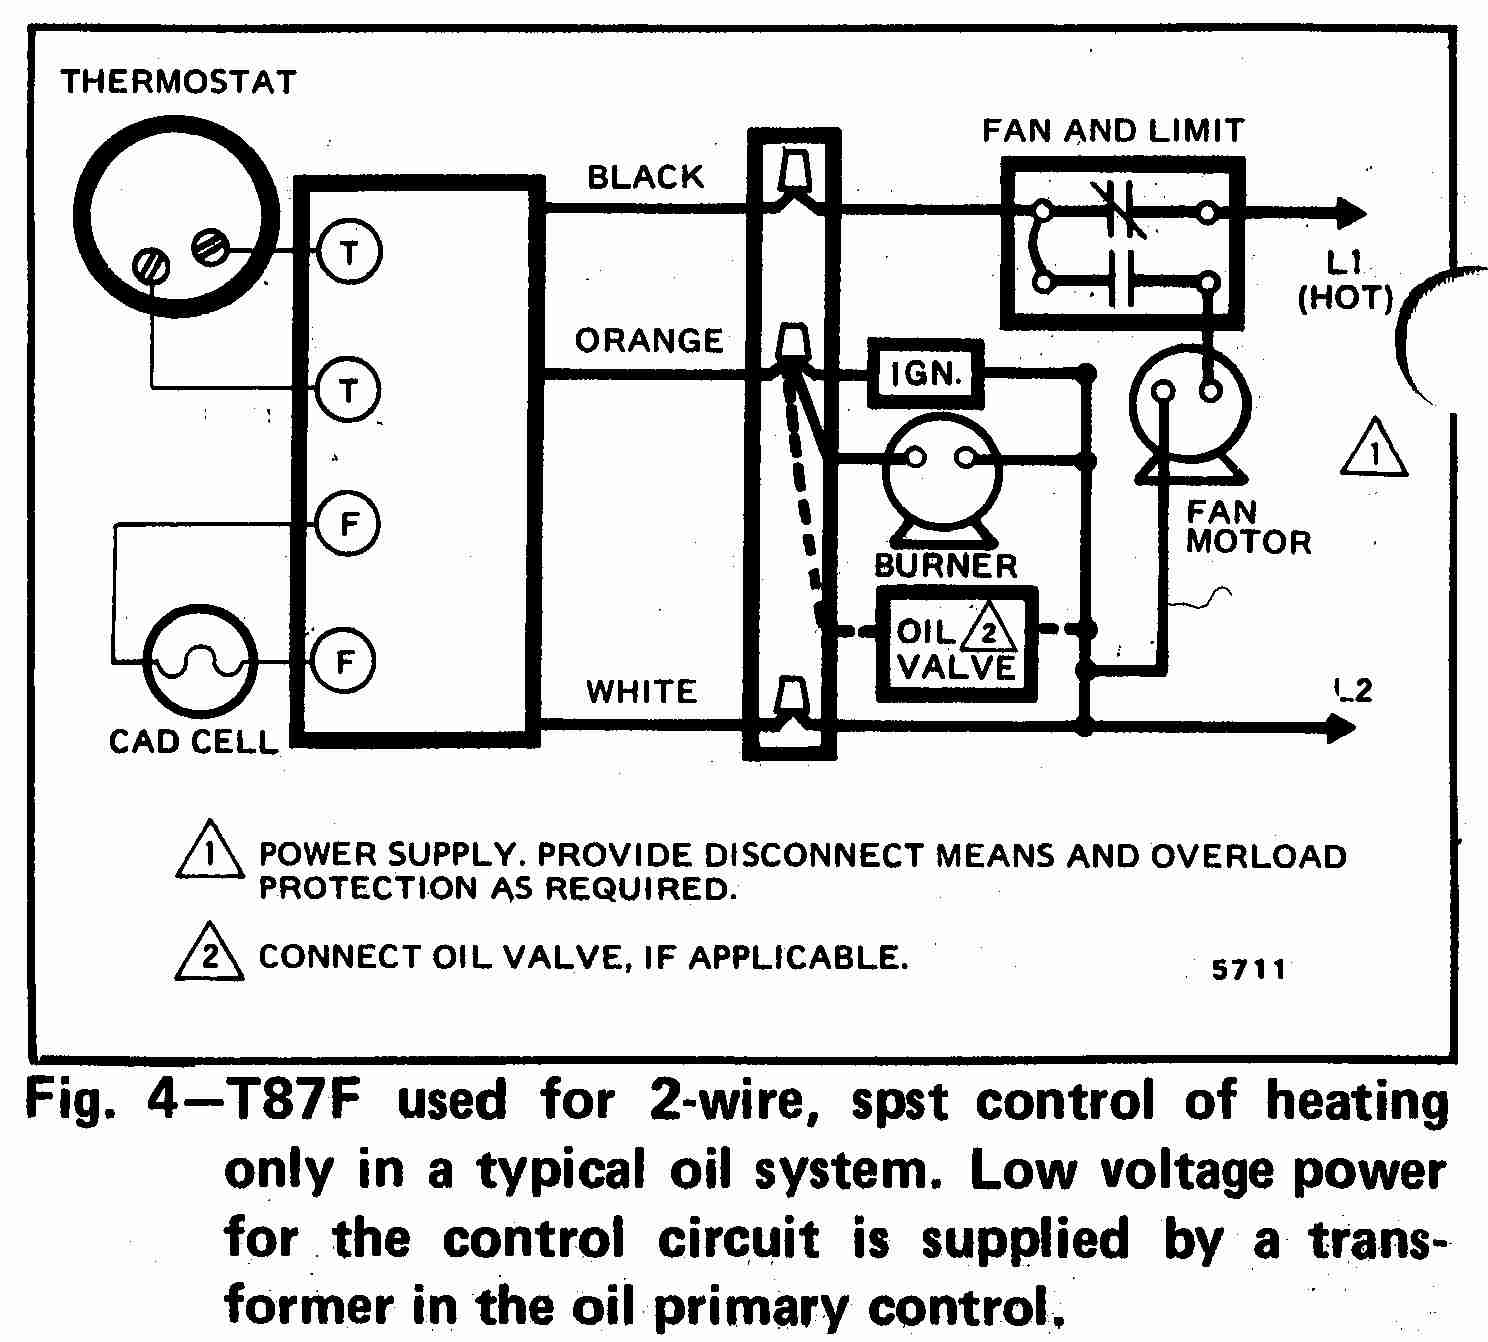 Room Thermostat Wiring Diagrams For Hvac Systems HVAC Plumbing Diagrams  Hvac Wiring Diagram